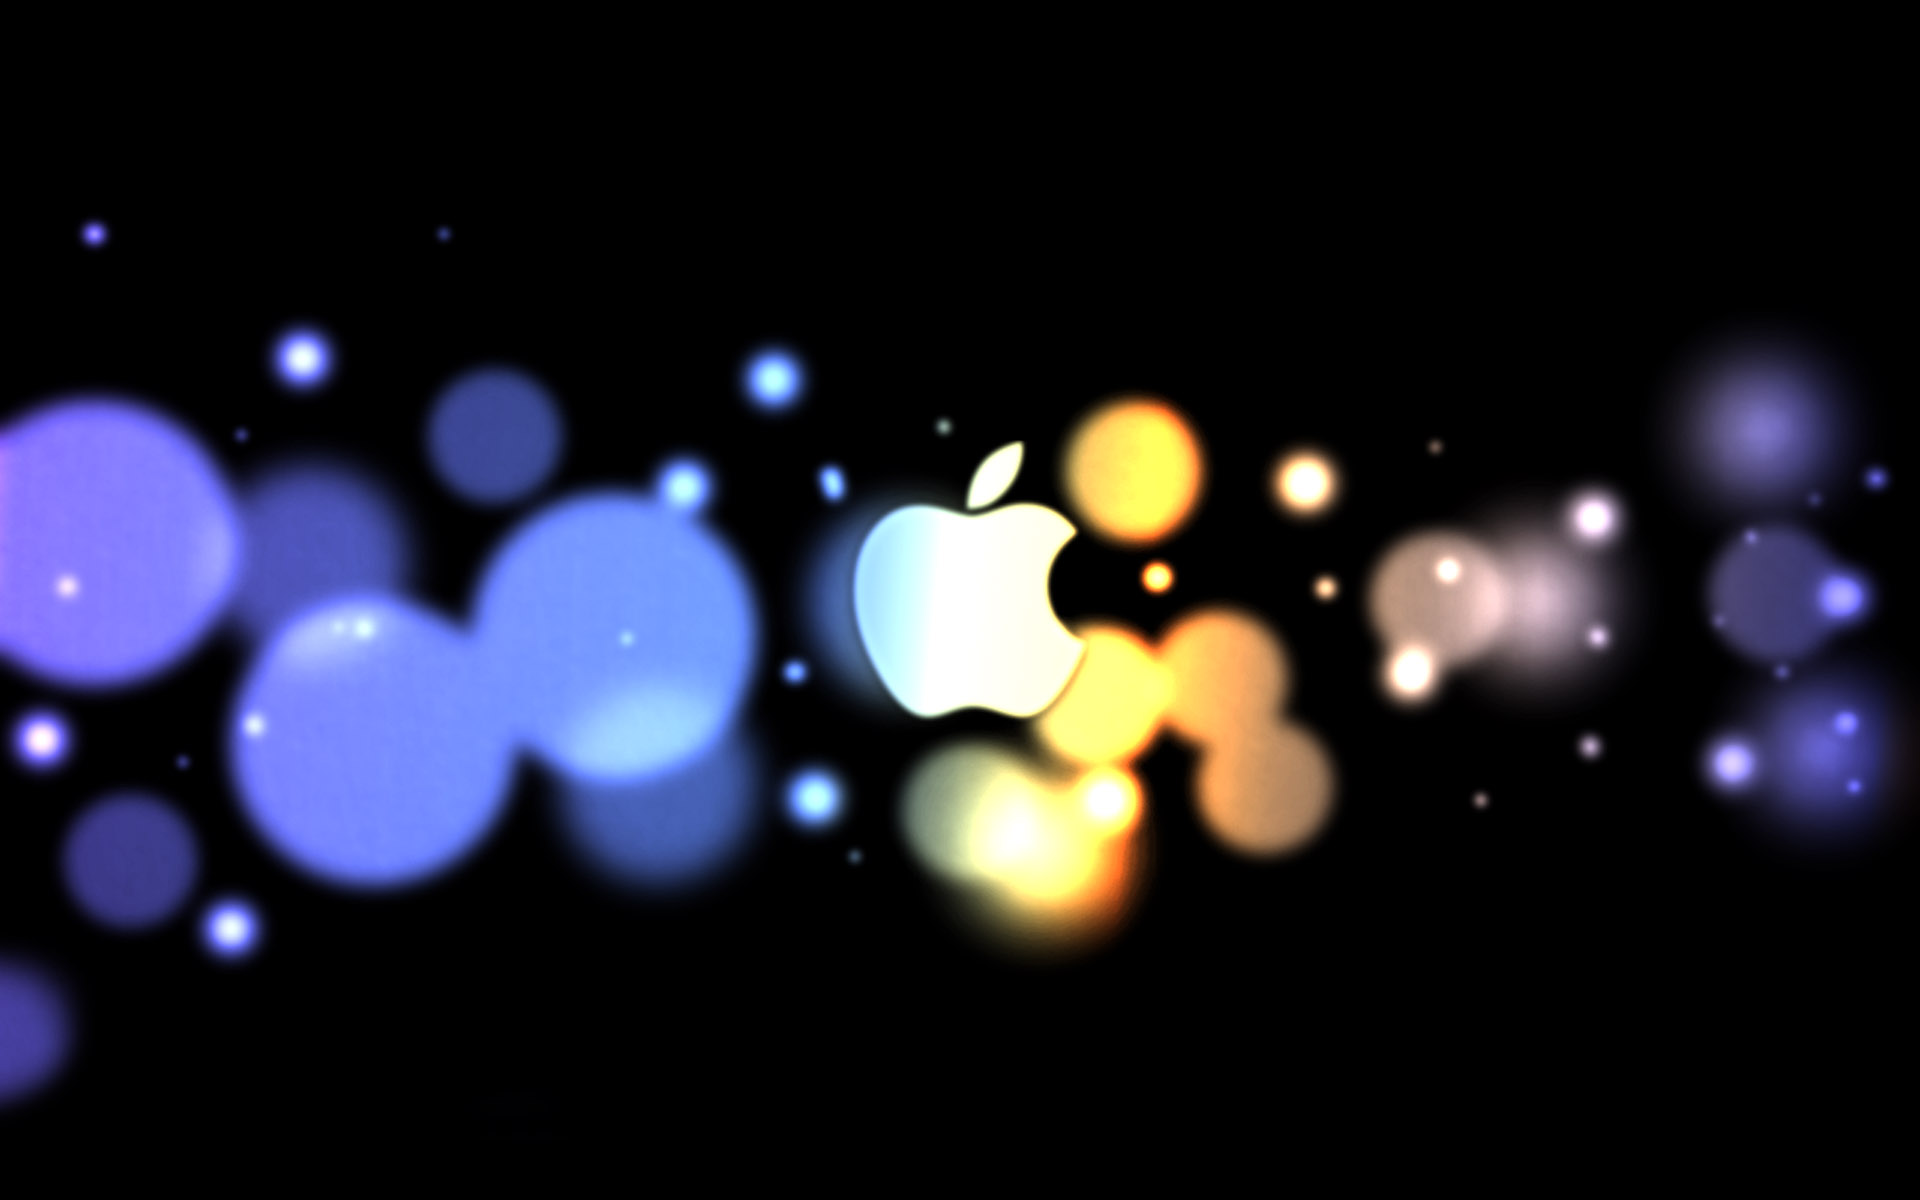 HD Apple wallpaper 19444